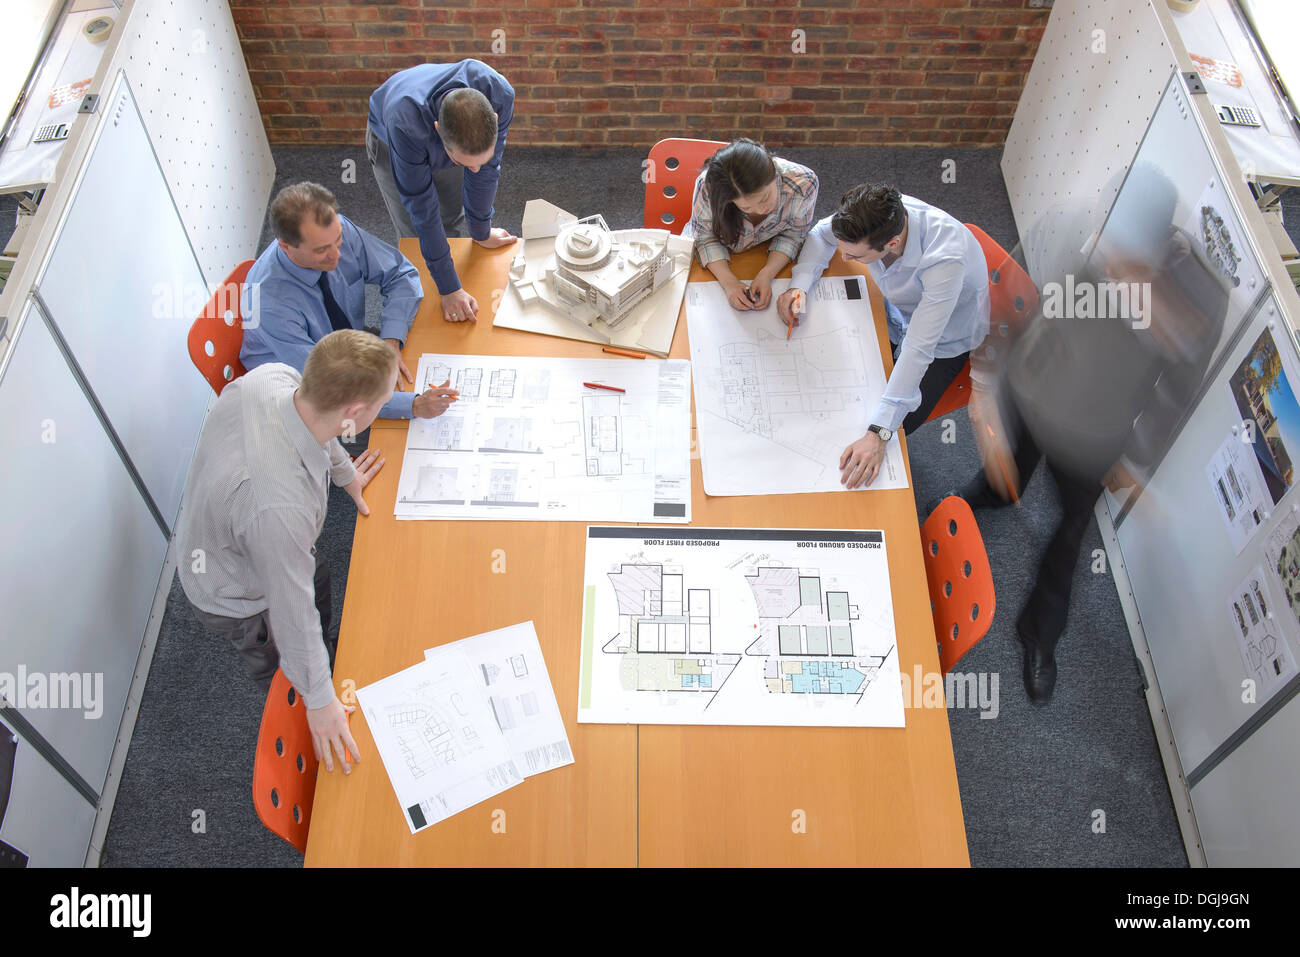 Team of architects discussing plans in meeting room, blurred motion - Stock Image